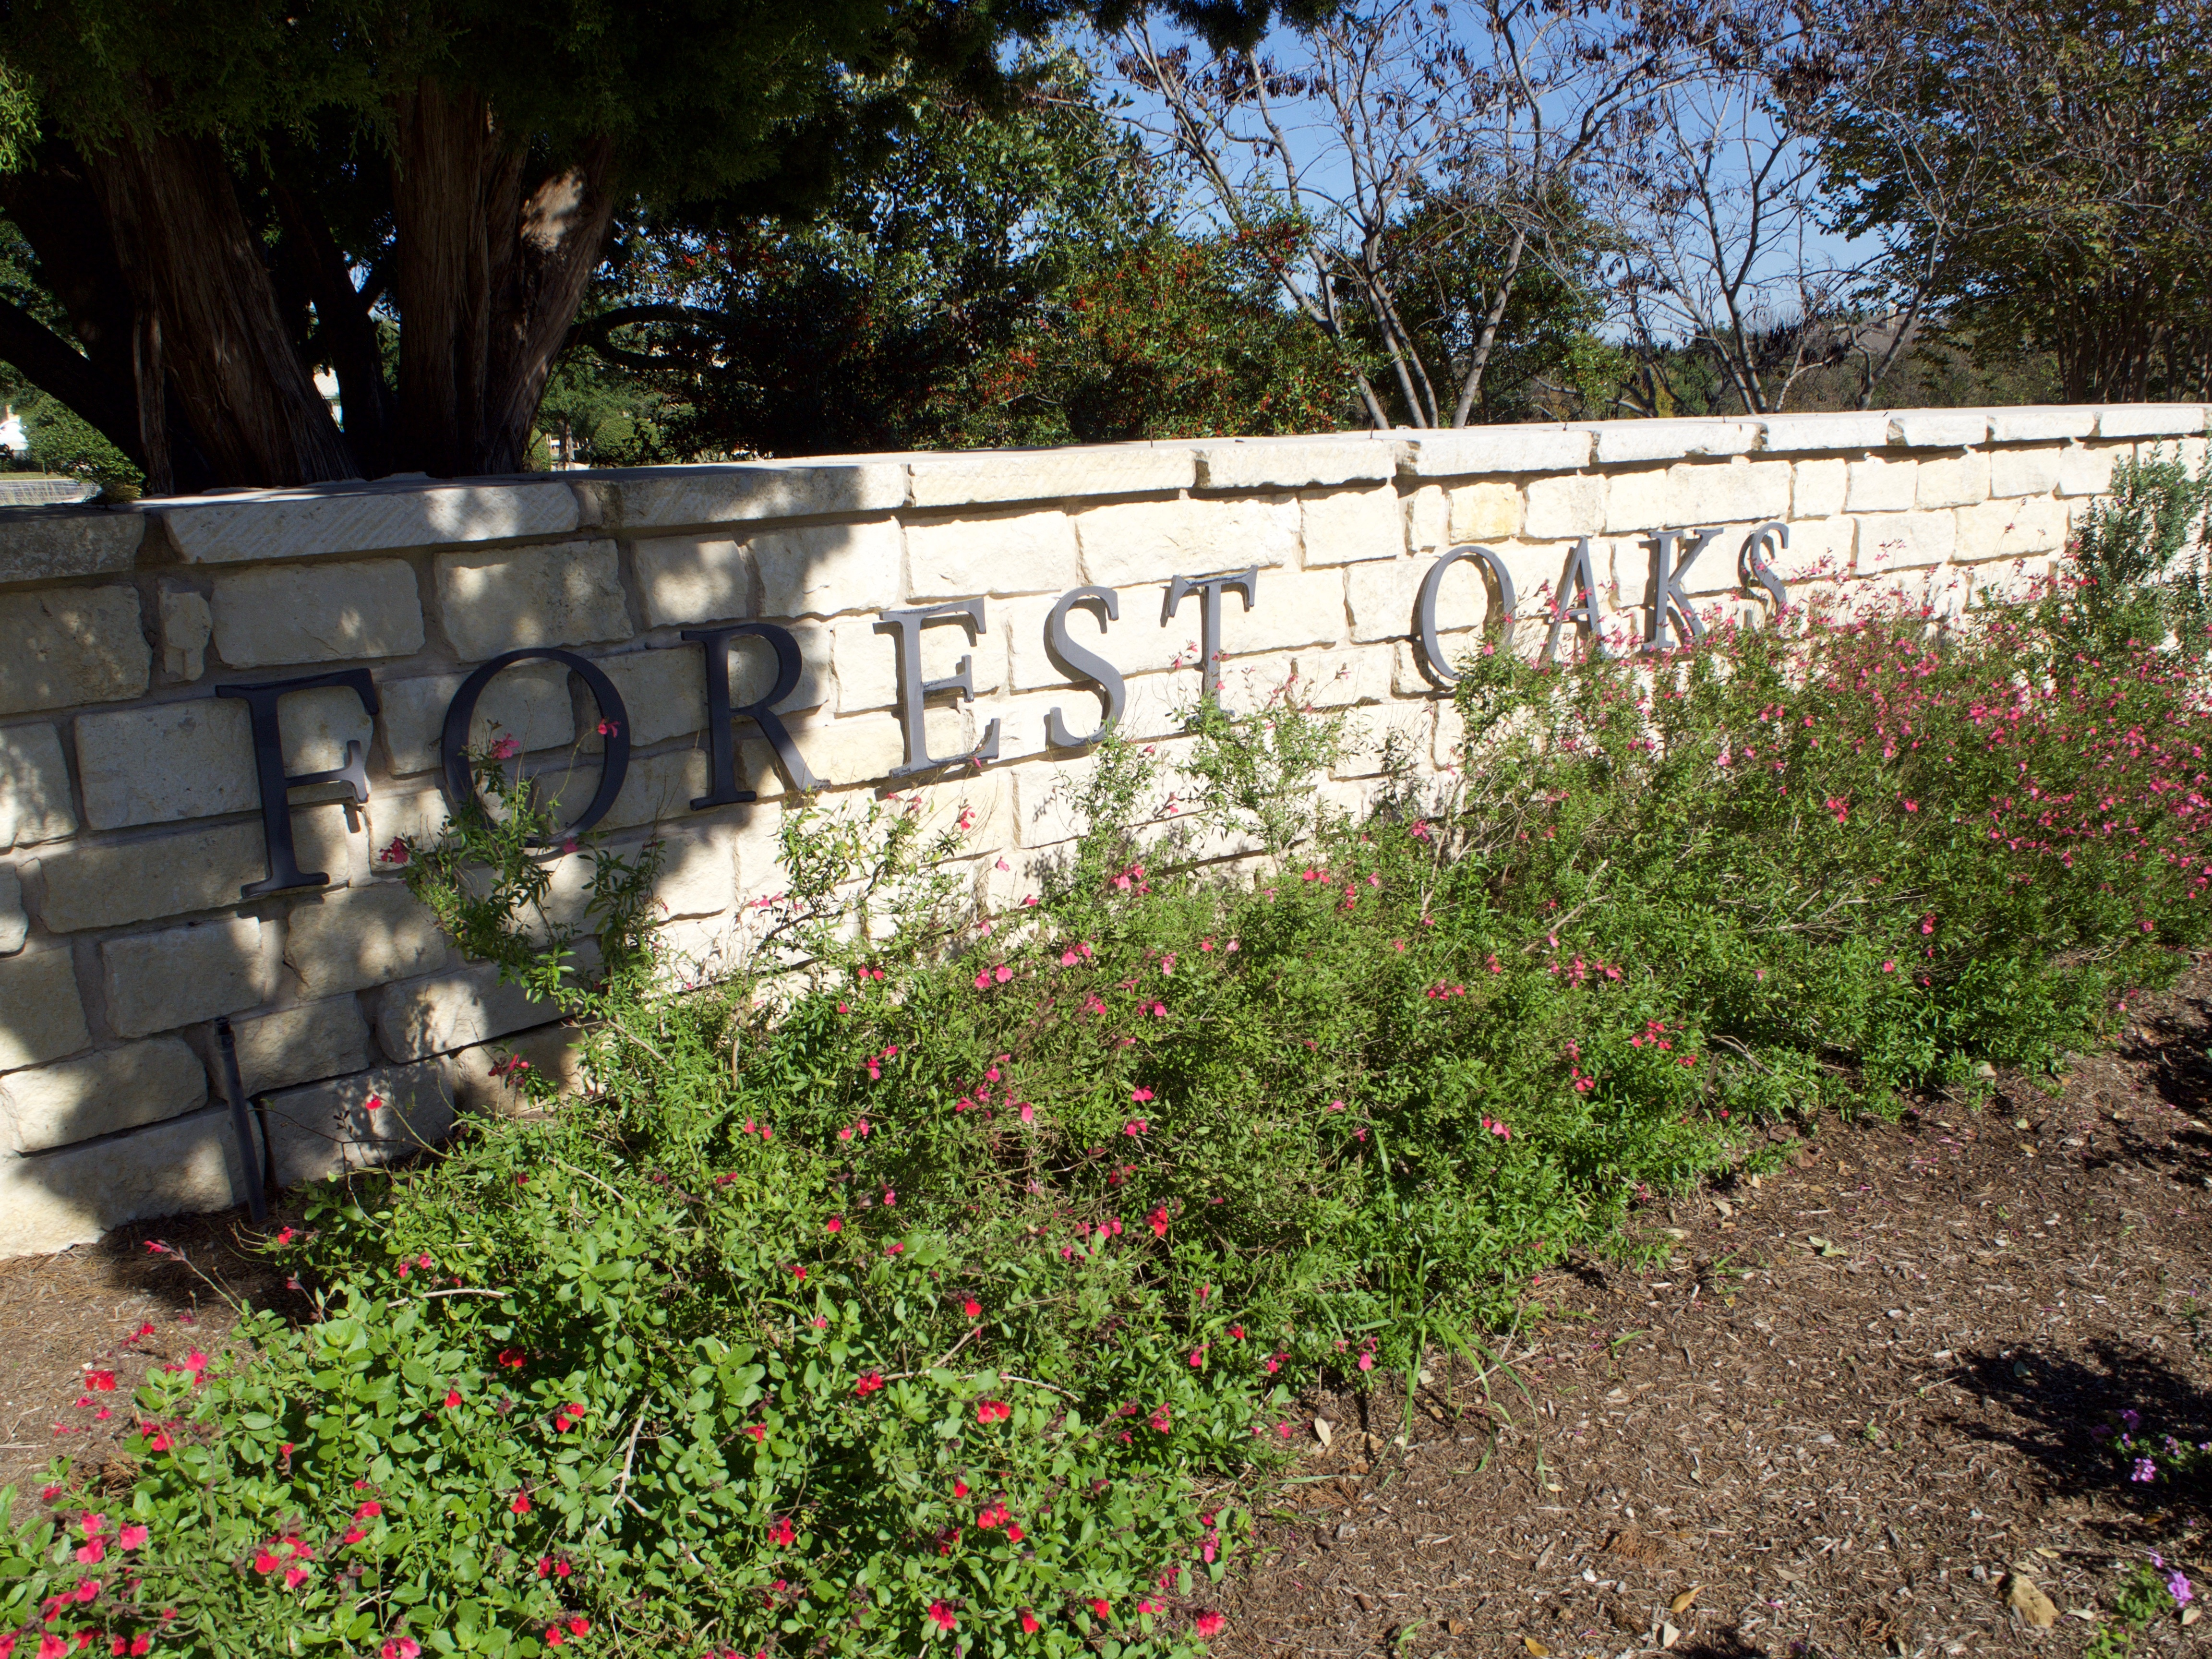 Forest Oaks HOA: Taking a Proactive Approach to Large Property